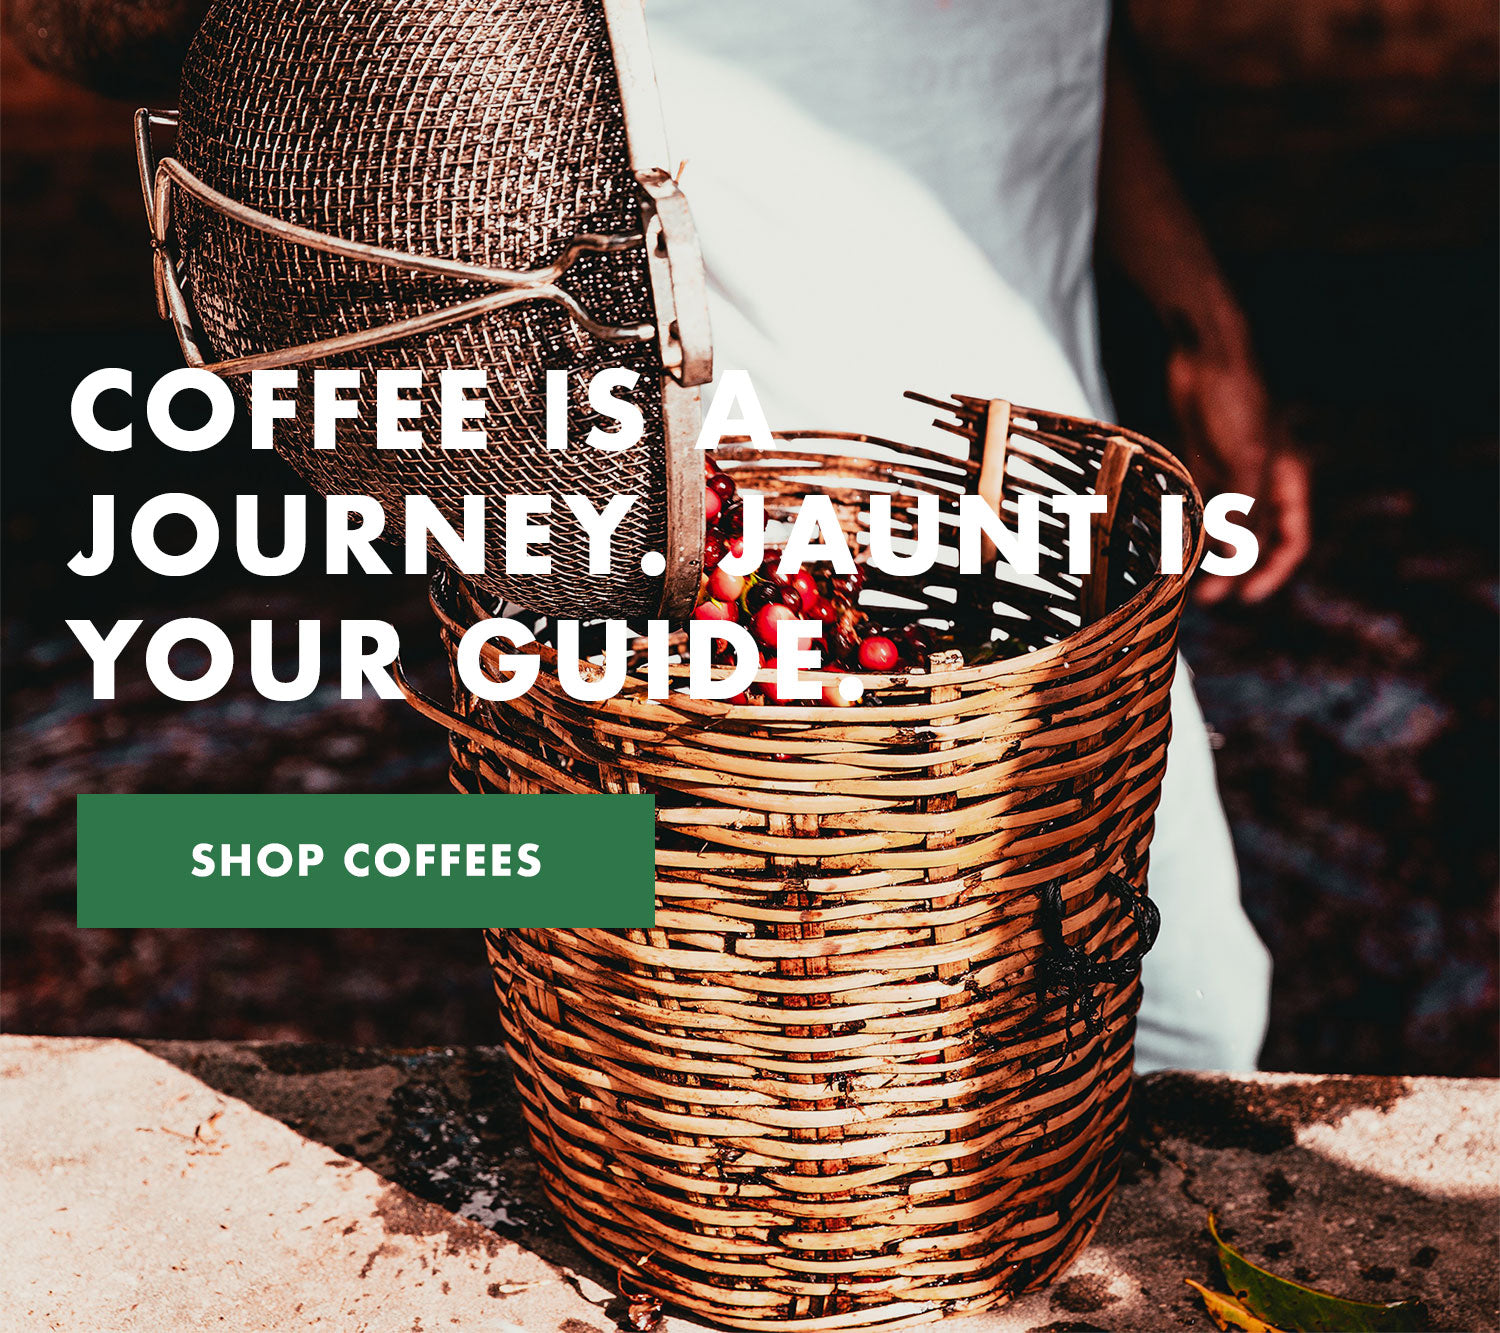 Jaunt Coffee Roasters